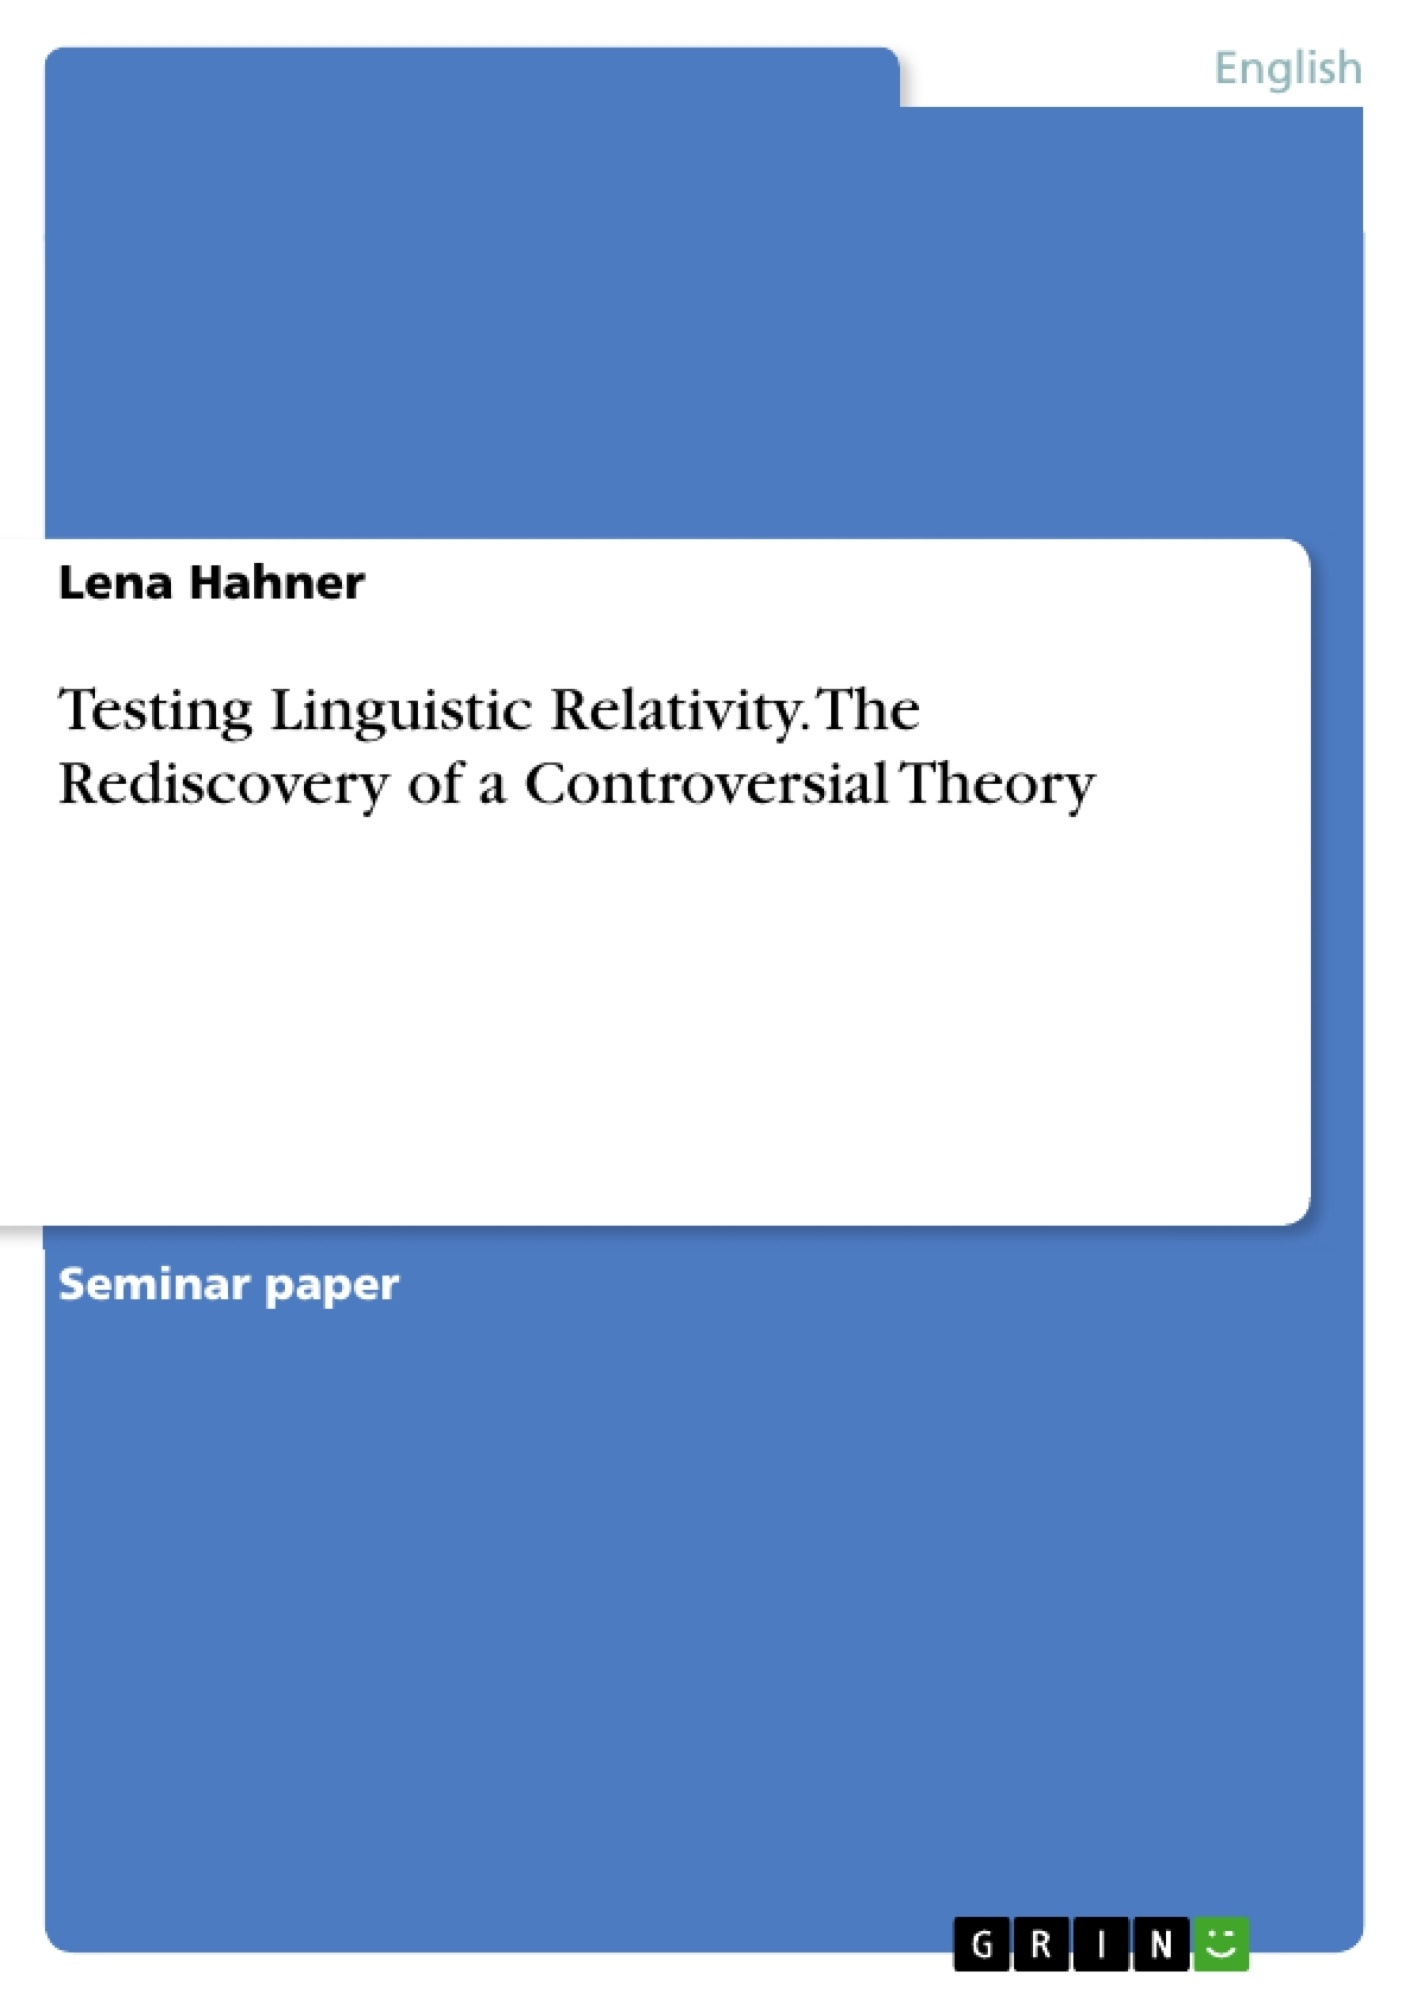 Title: Testing Linguistic Relativity. The Rediscovery of a Controversial Theory